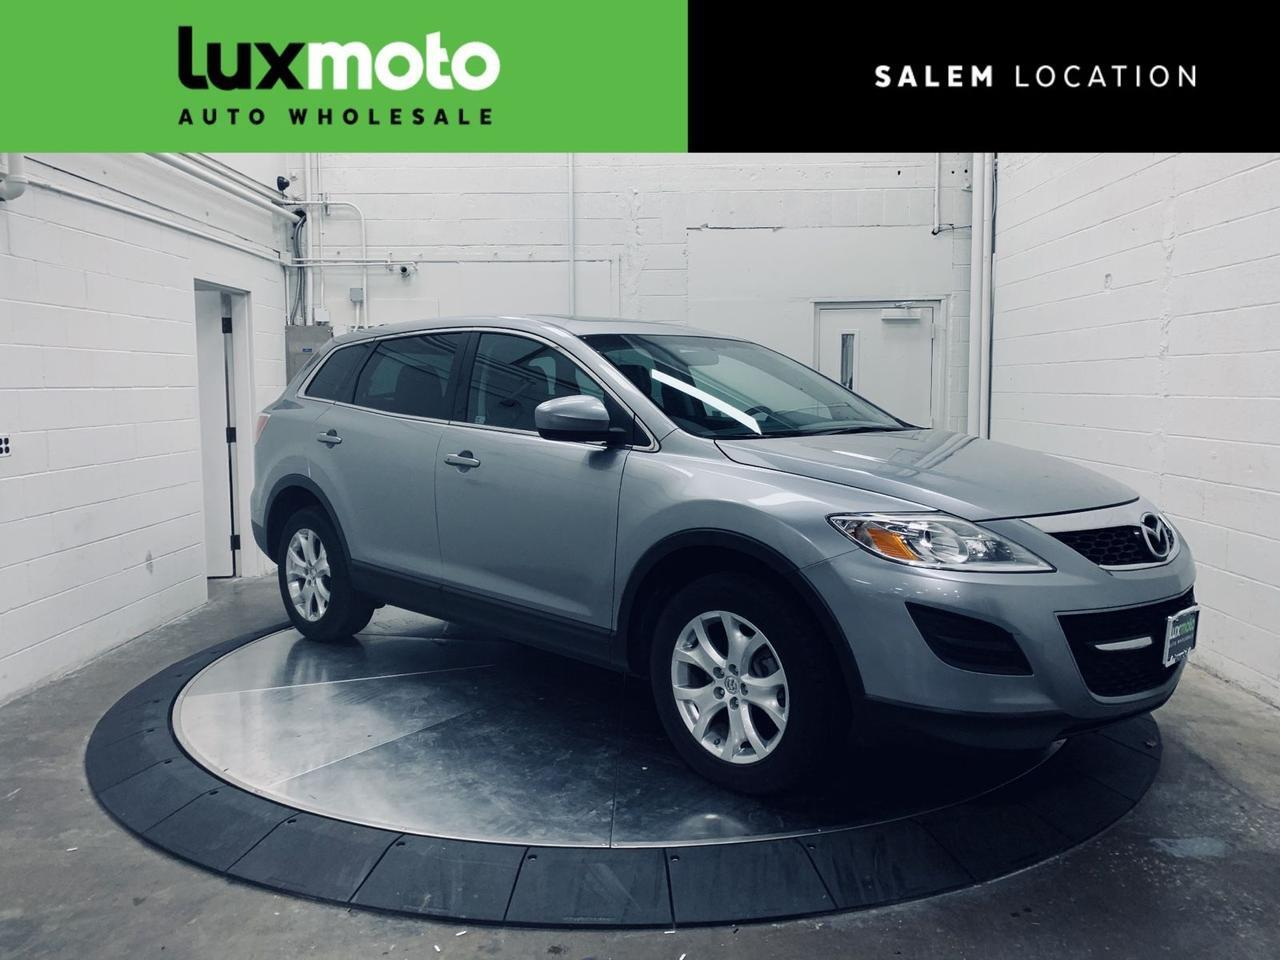 2012 Mazda CX-9 AWD Touring Moonroof BOSE Stereo Backup Cam Portland OR